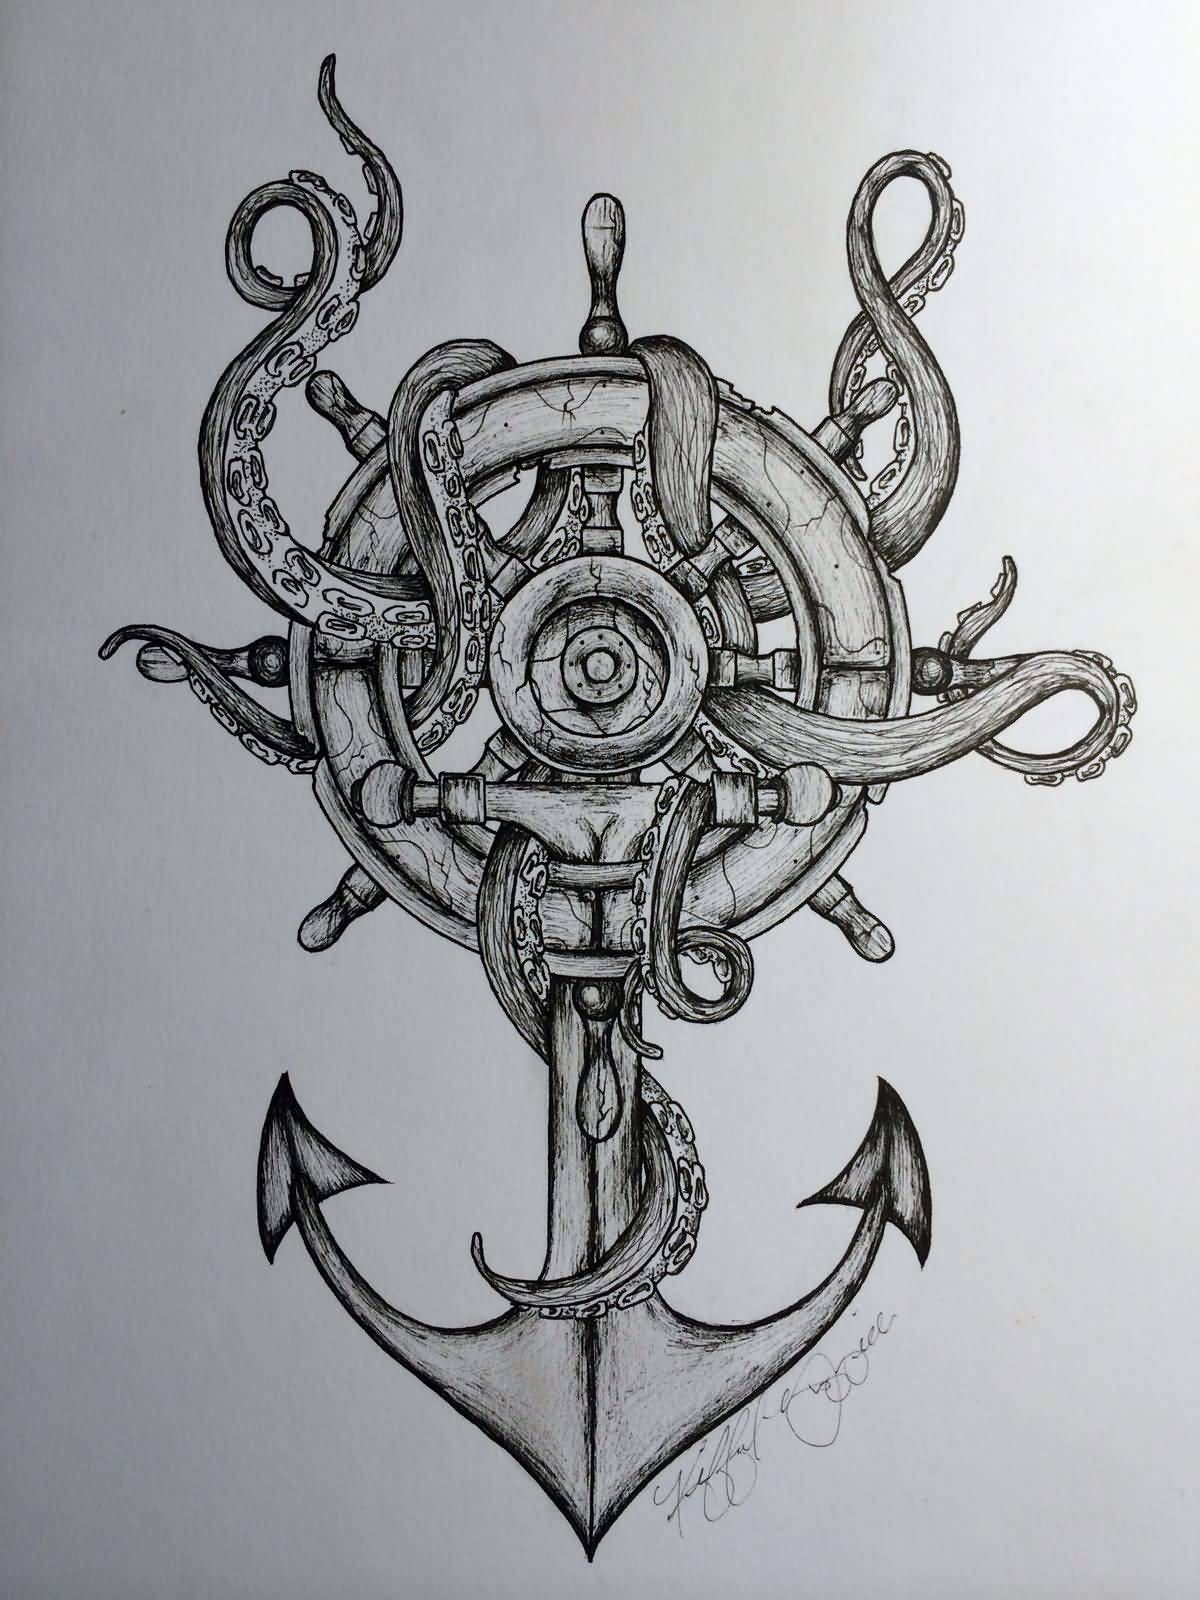 Black And Grey Octopus With Ship Wheel And Anchor Tattoo Design Octopus Tattoo Design Pirate Tattoo Sleeve Tattoos